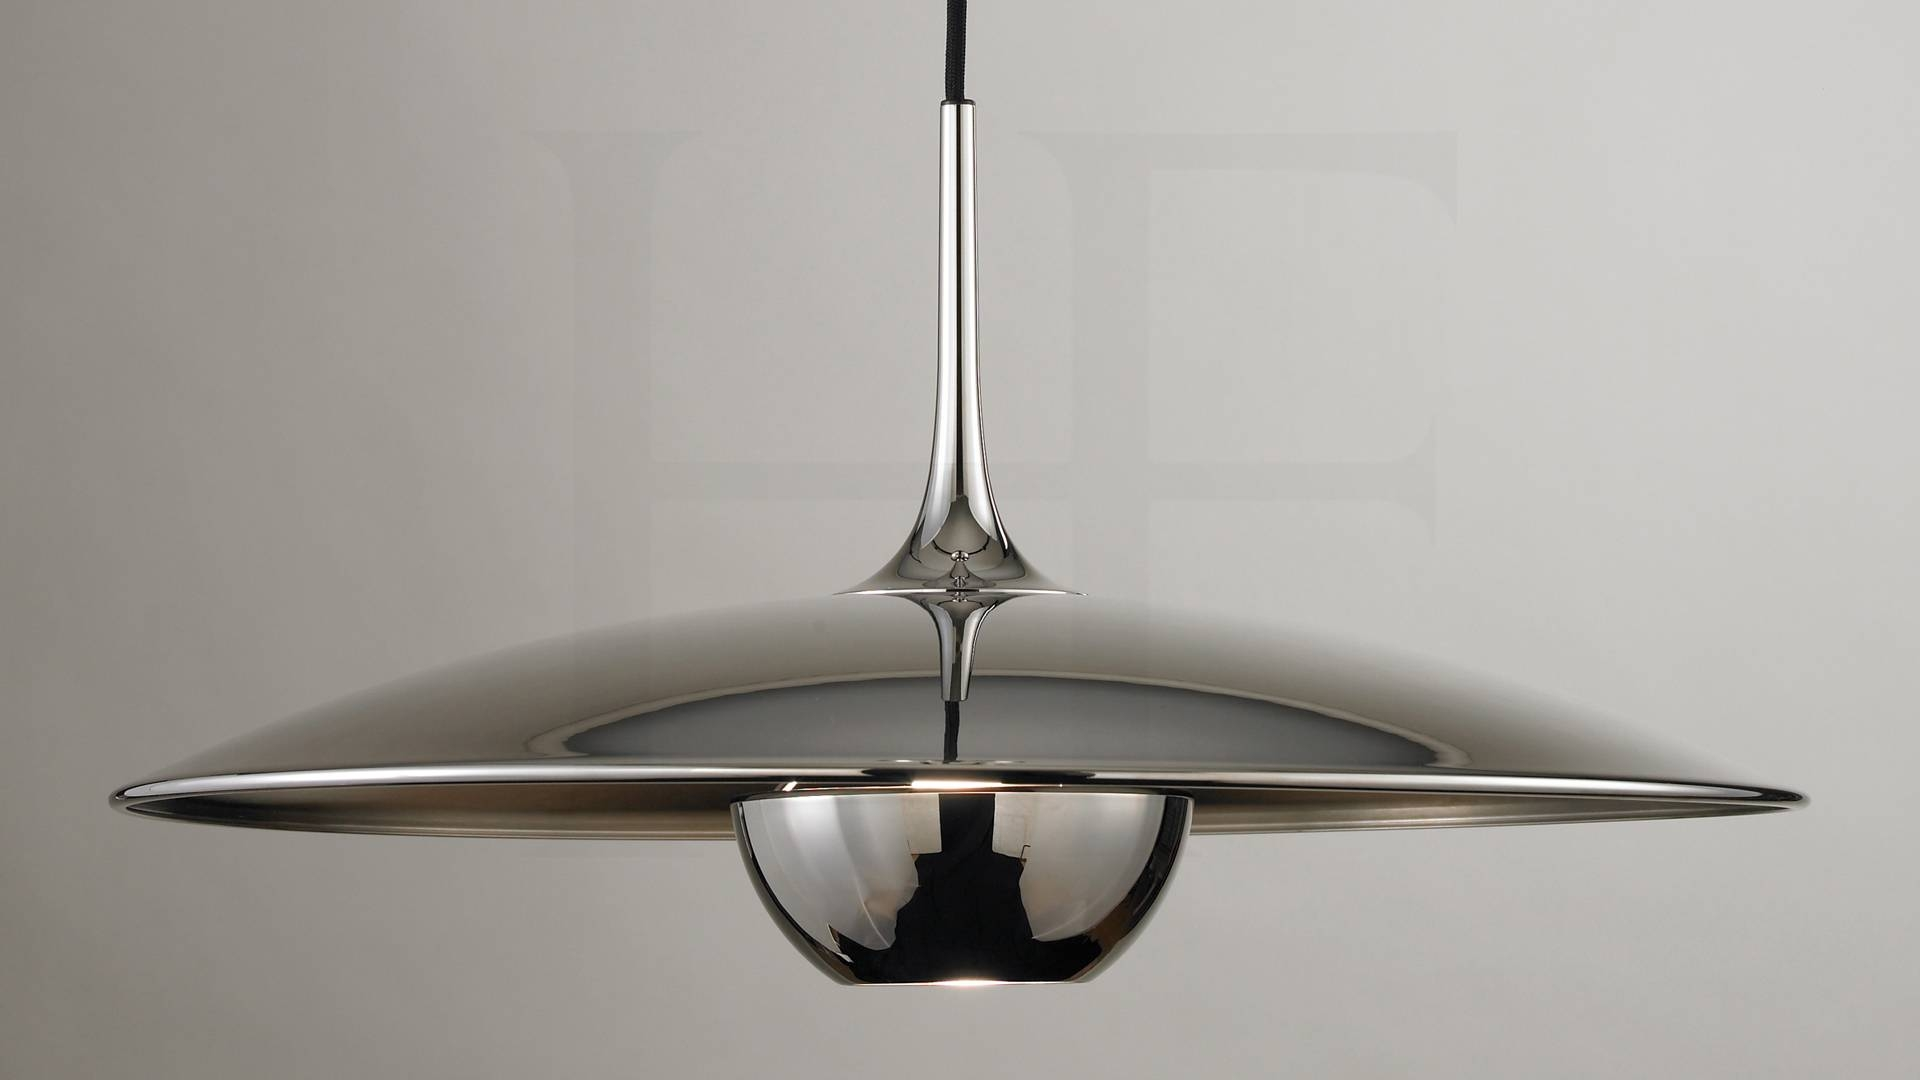 Astonishing Short Pendant Lights 36 In Pendant Dining Room Light Regarding Short Pendant Lights Fixtures (View 3 of 15)